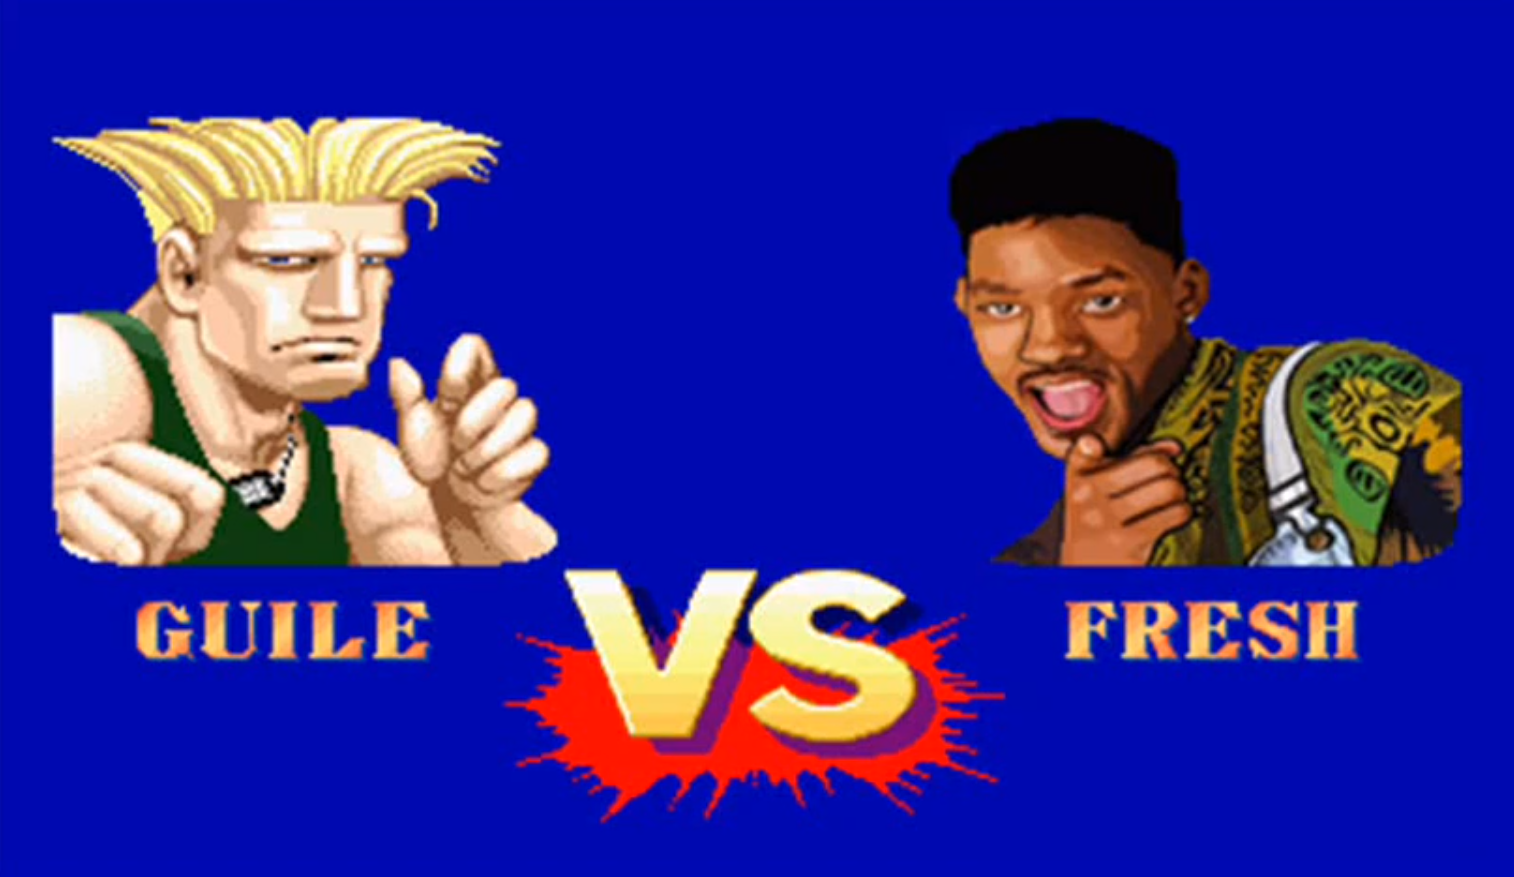 Fourplay Episode 18 Guile S Theme Goes With Fourplay The Free